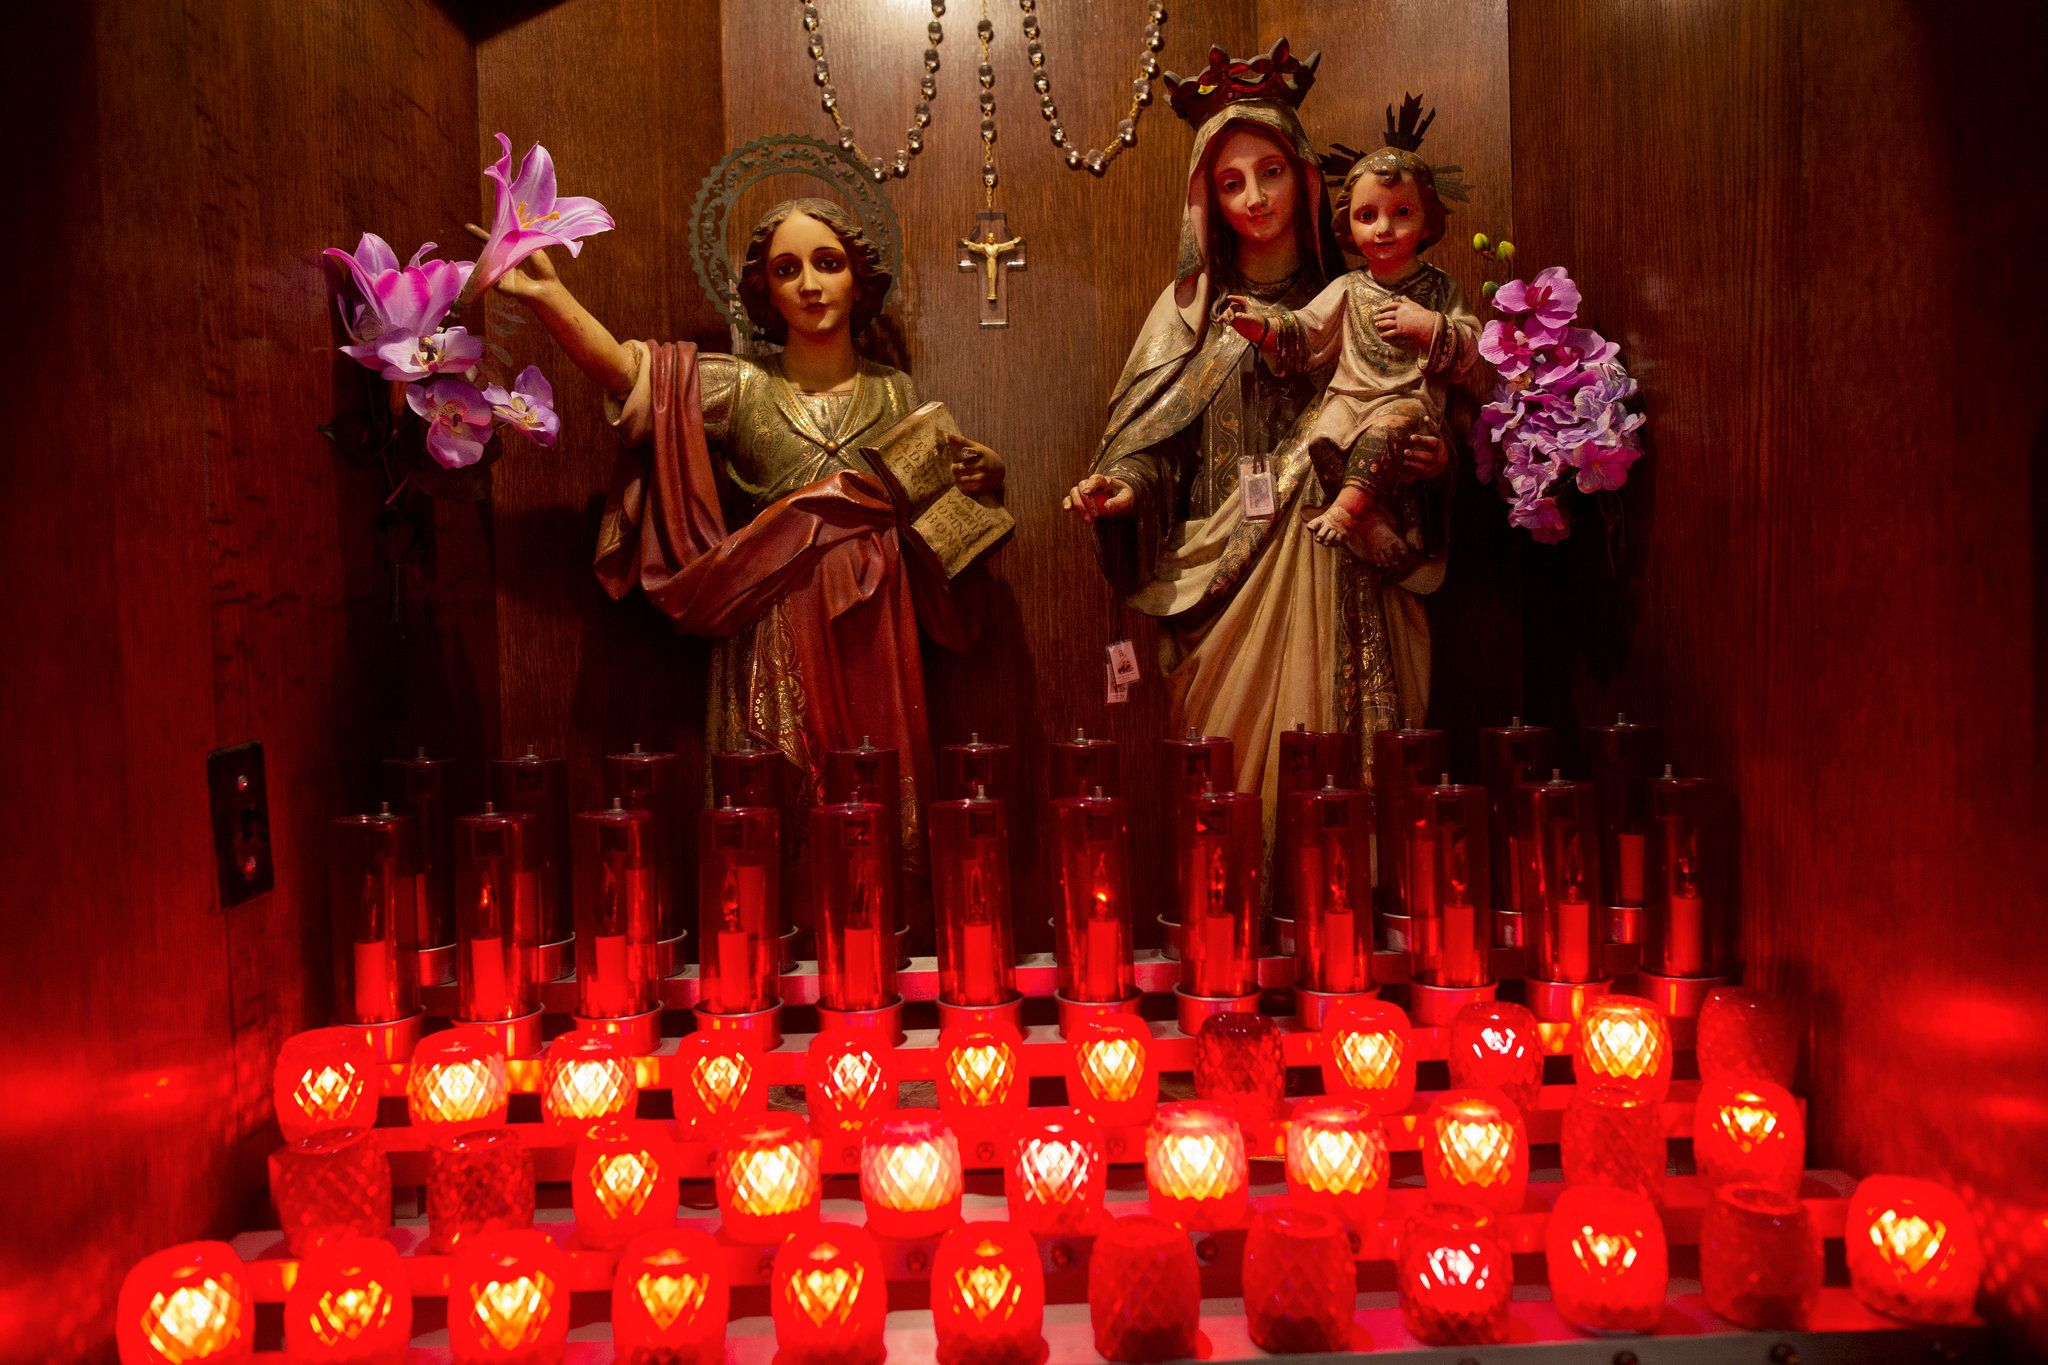 Heartache for New York's Catholics as Church Closings Are Announced - NYTimes.com. Religious statues adorn an alcove at the Church of the Holy Agony during morning Mass in Harlem. During the service, congregants learned that their parish would be merged. Victor J. Blue for The New York Times